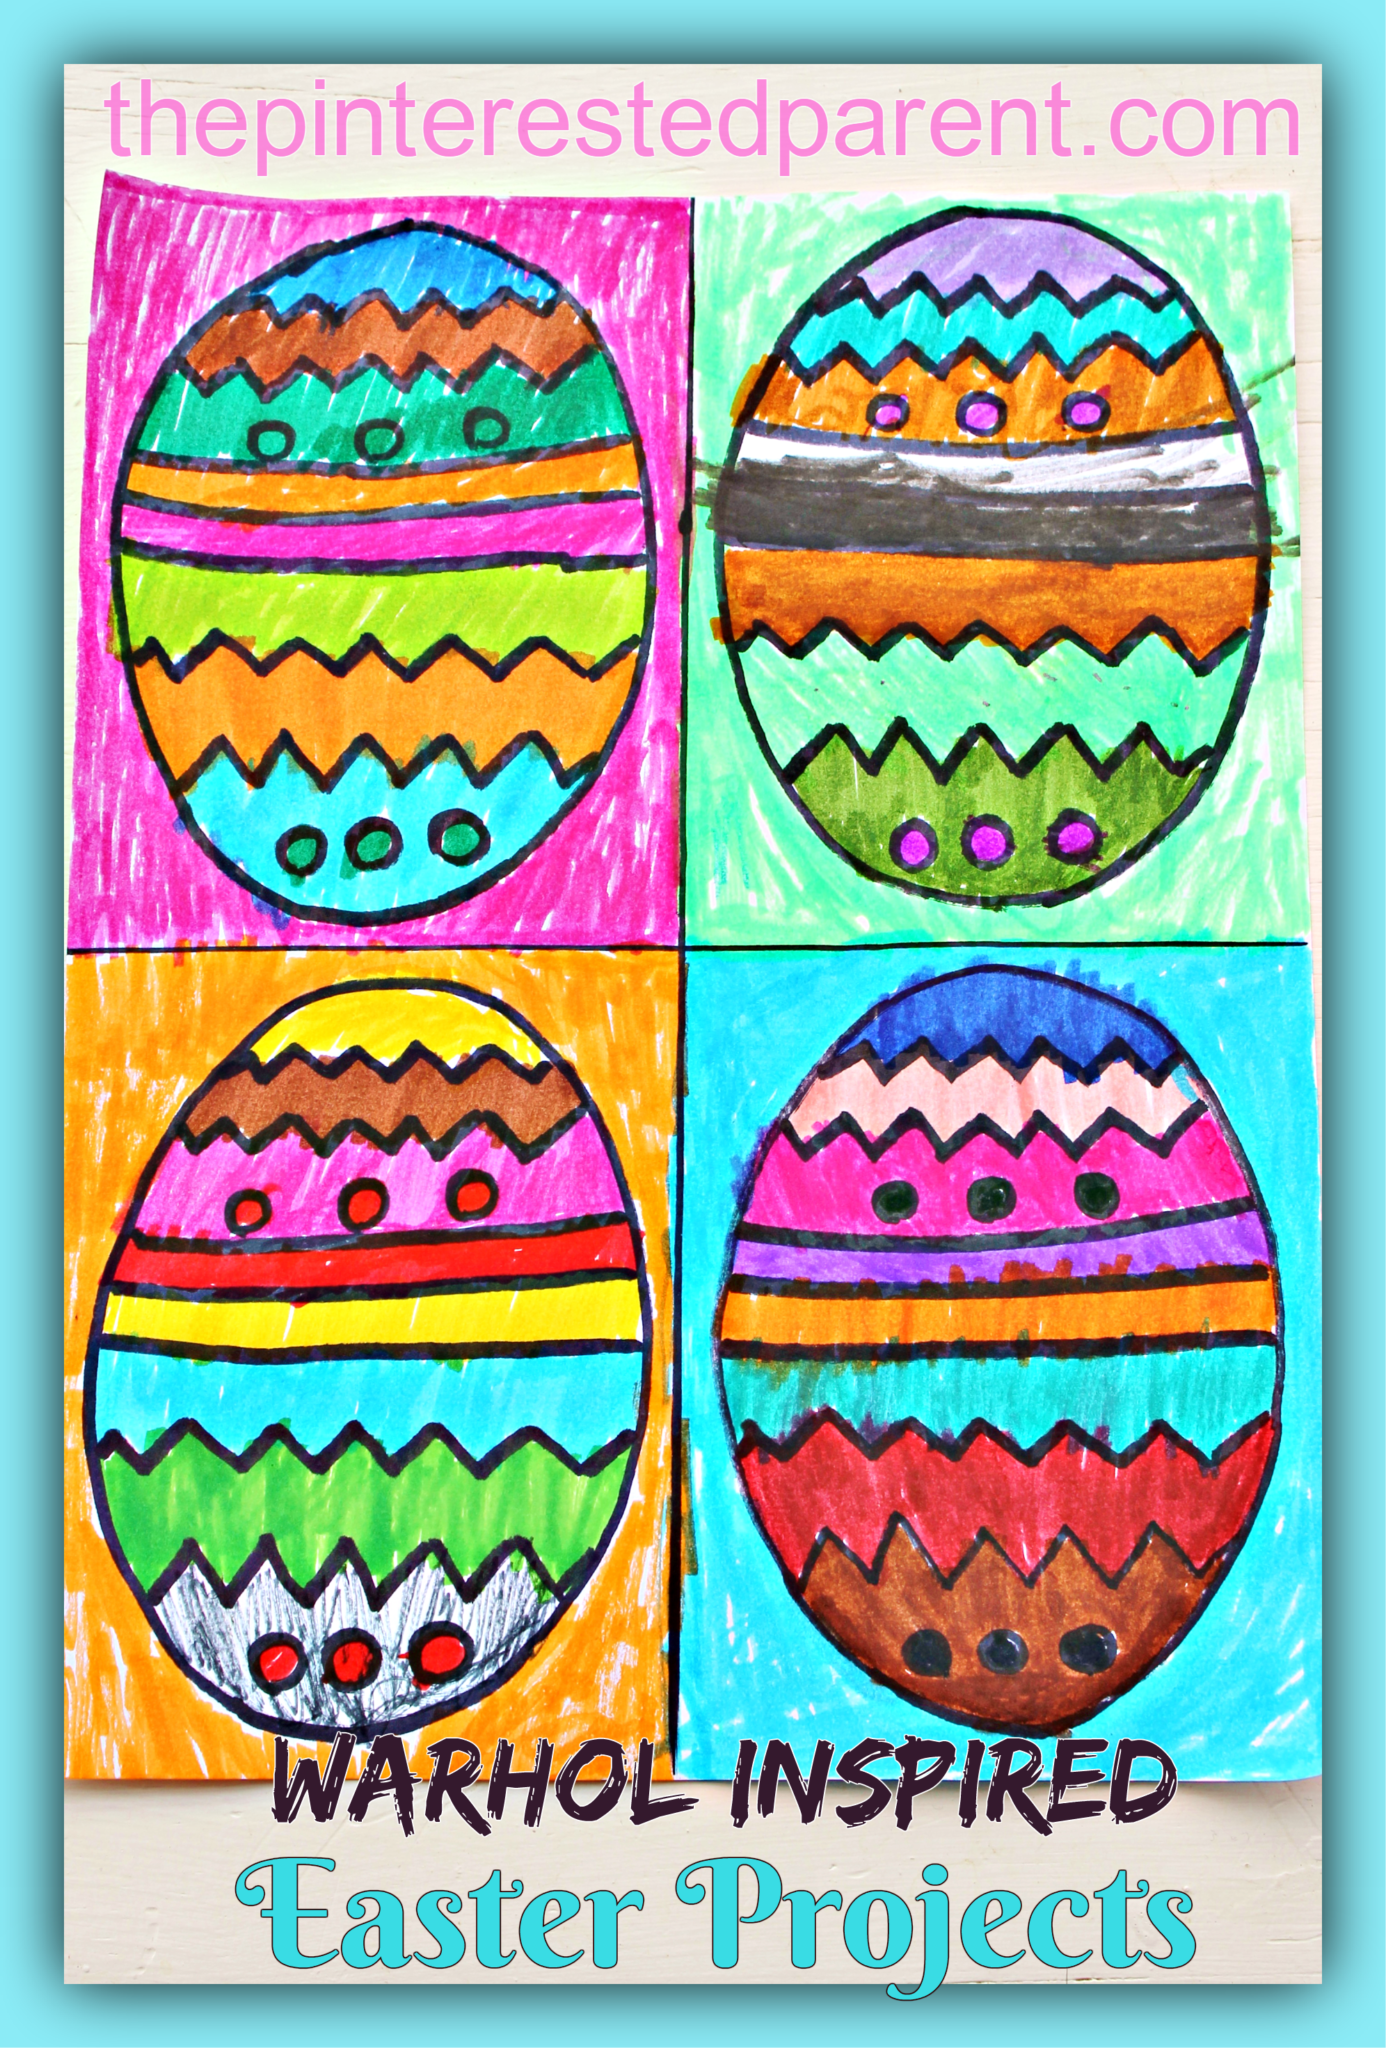 Warhol Inspired Easter Art The Pinterested Parent